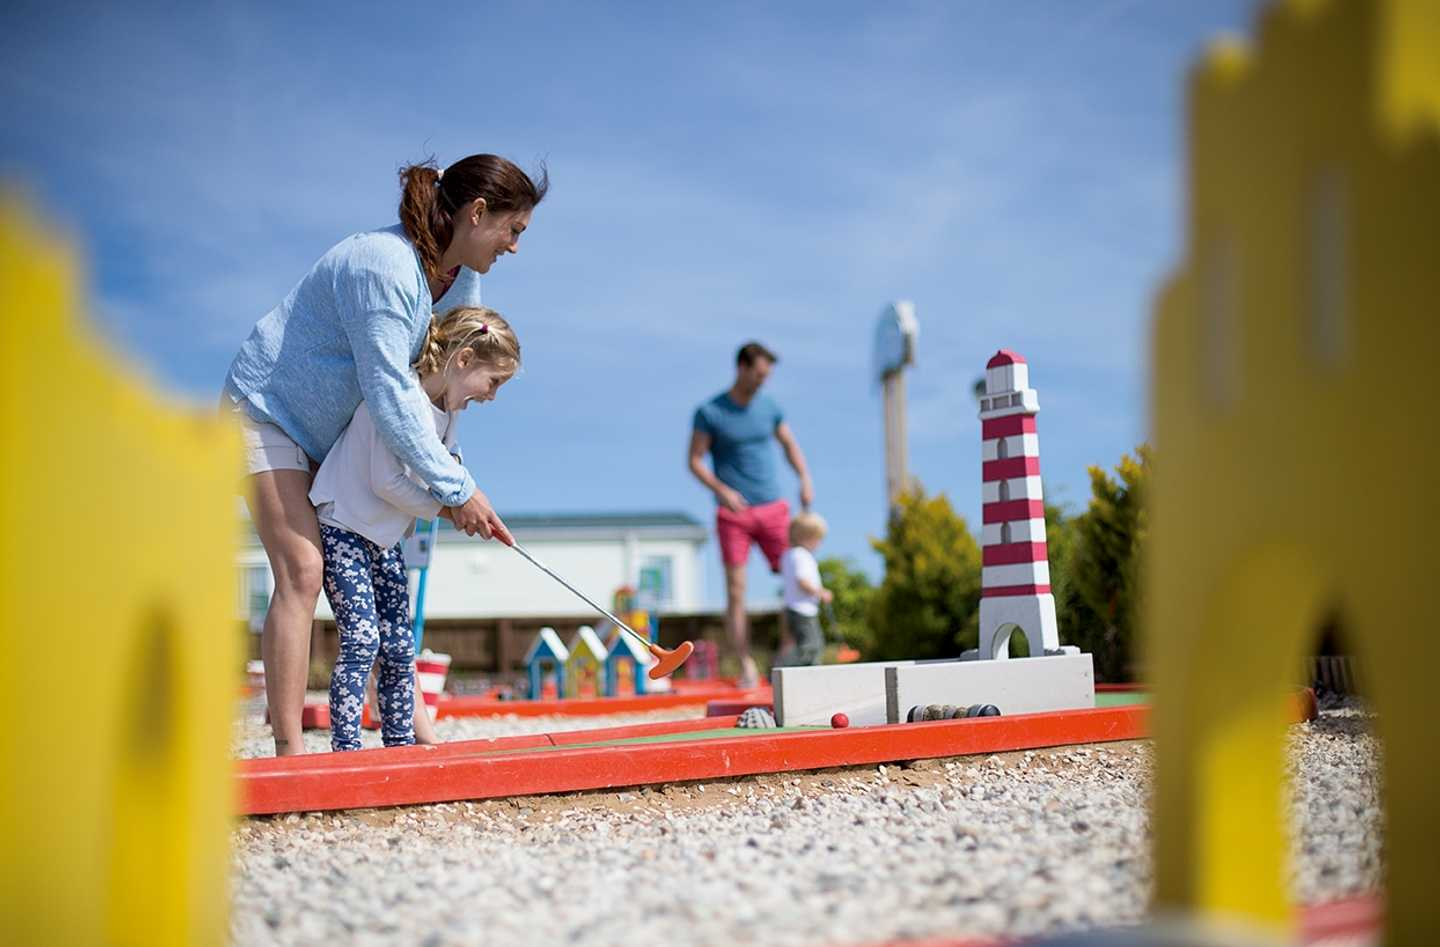 A mother and child playing crazy golf